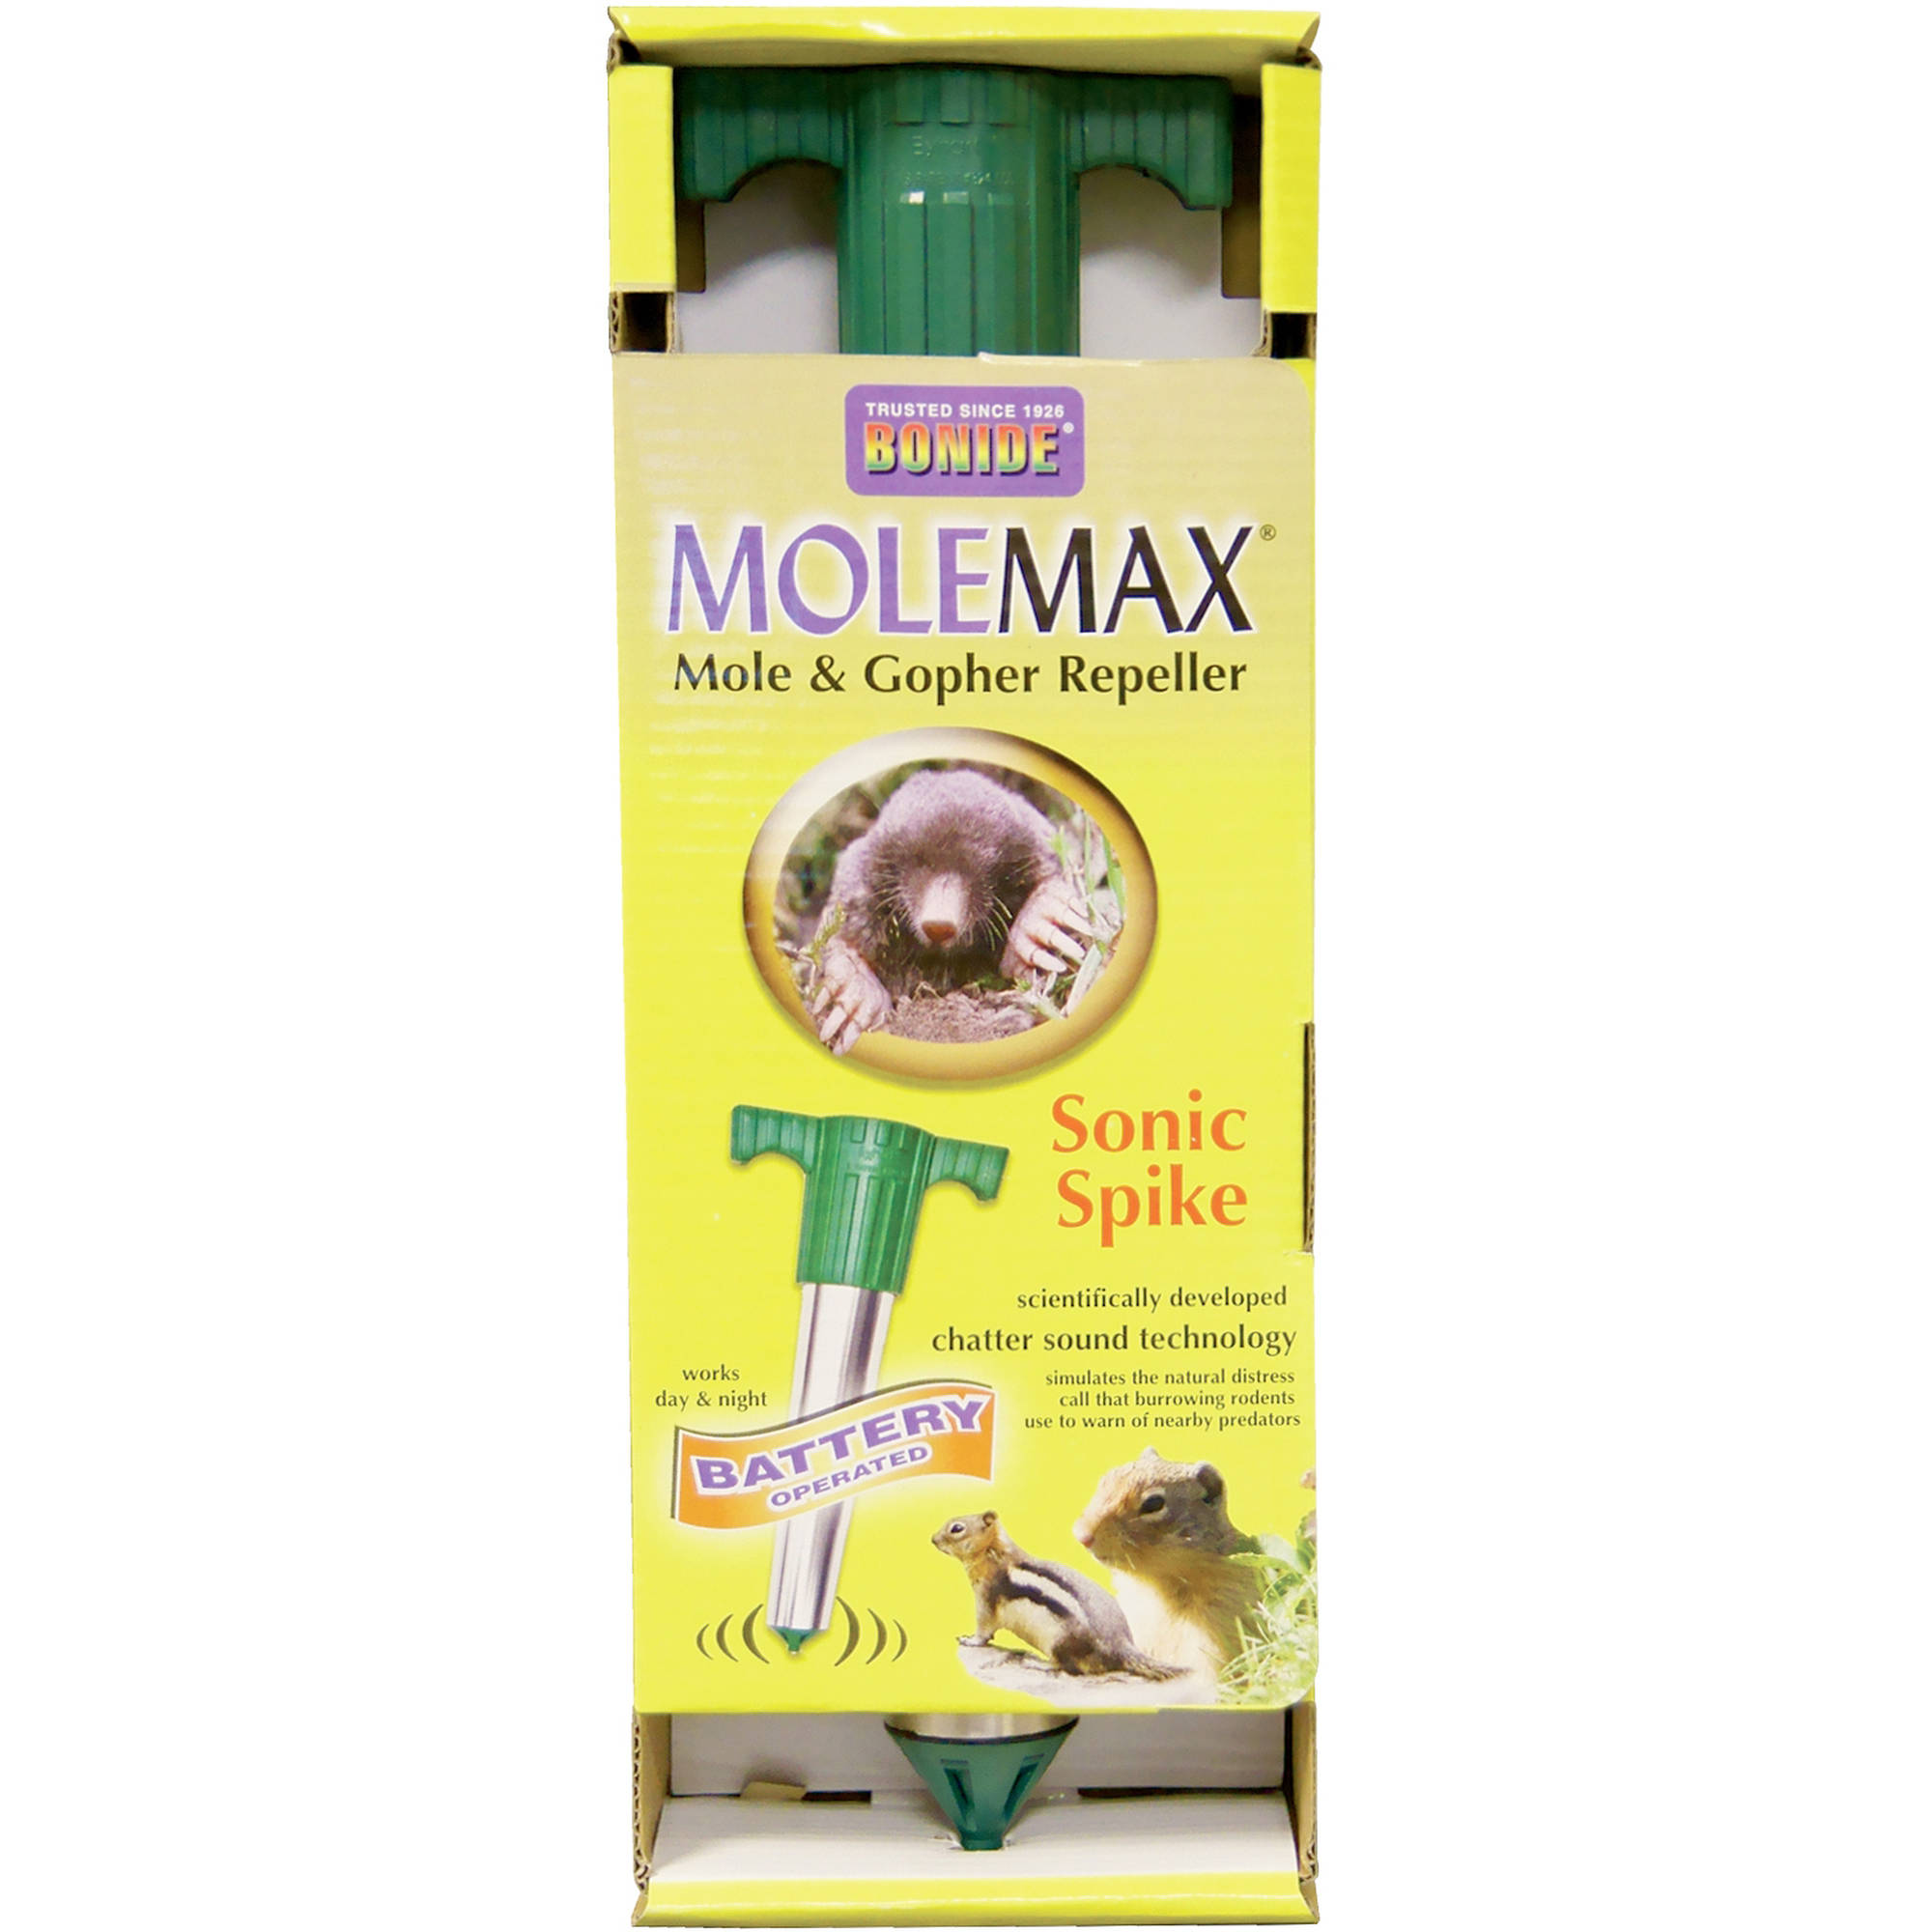 Bonide 61118 Battery Operated MoleMax Sonic Spike